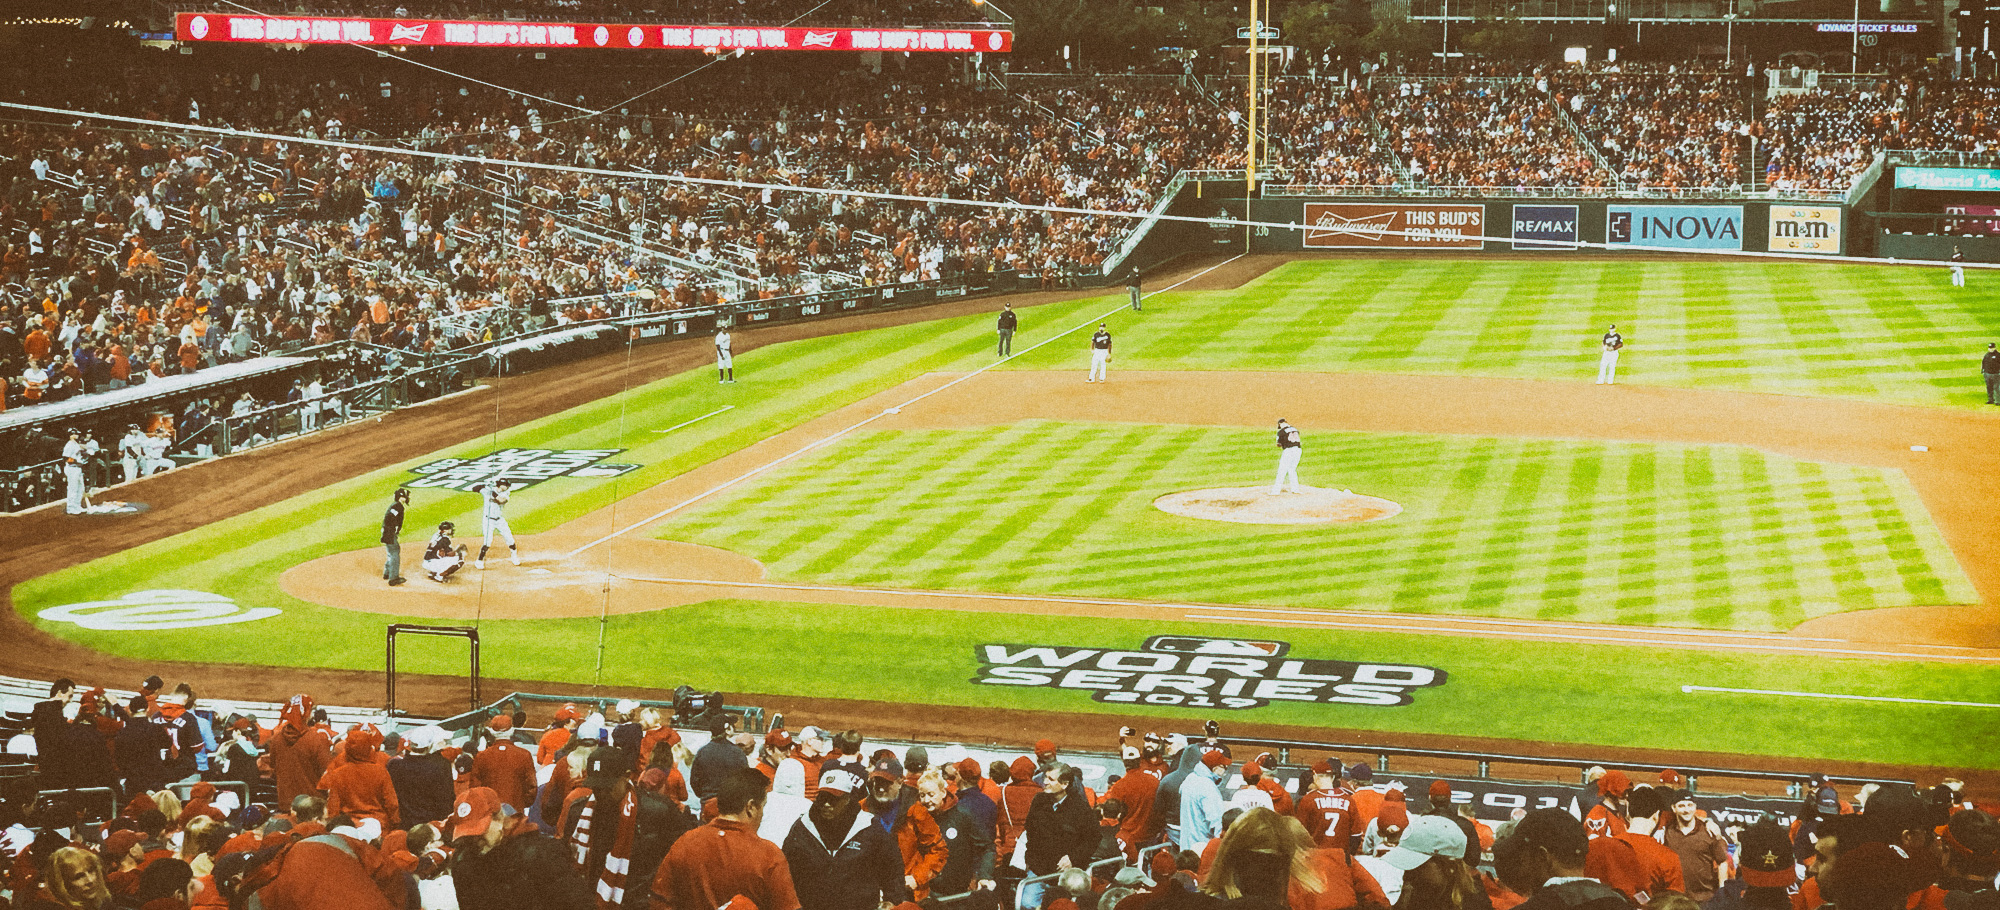 World Series 2019, Game 4: Houston Astros 8 - Washington Nationals 1